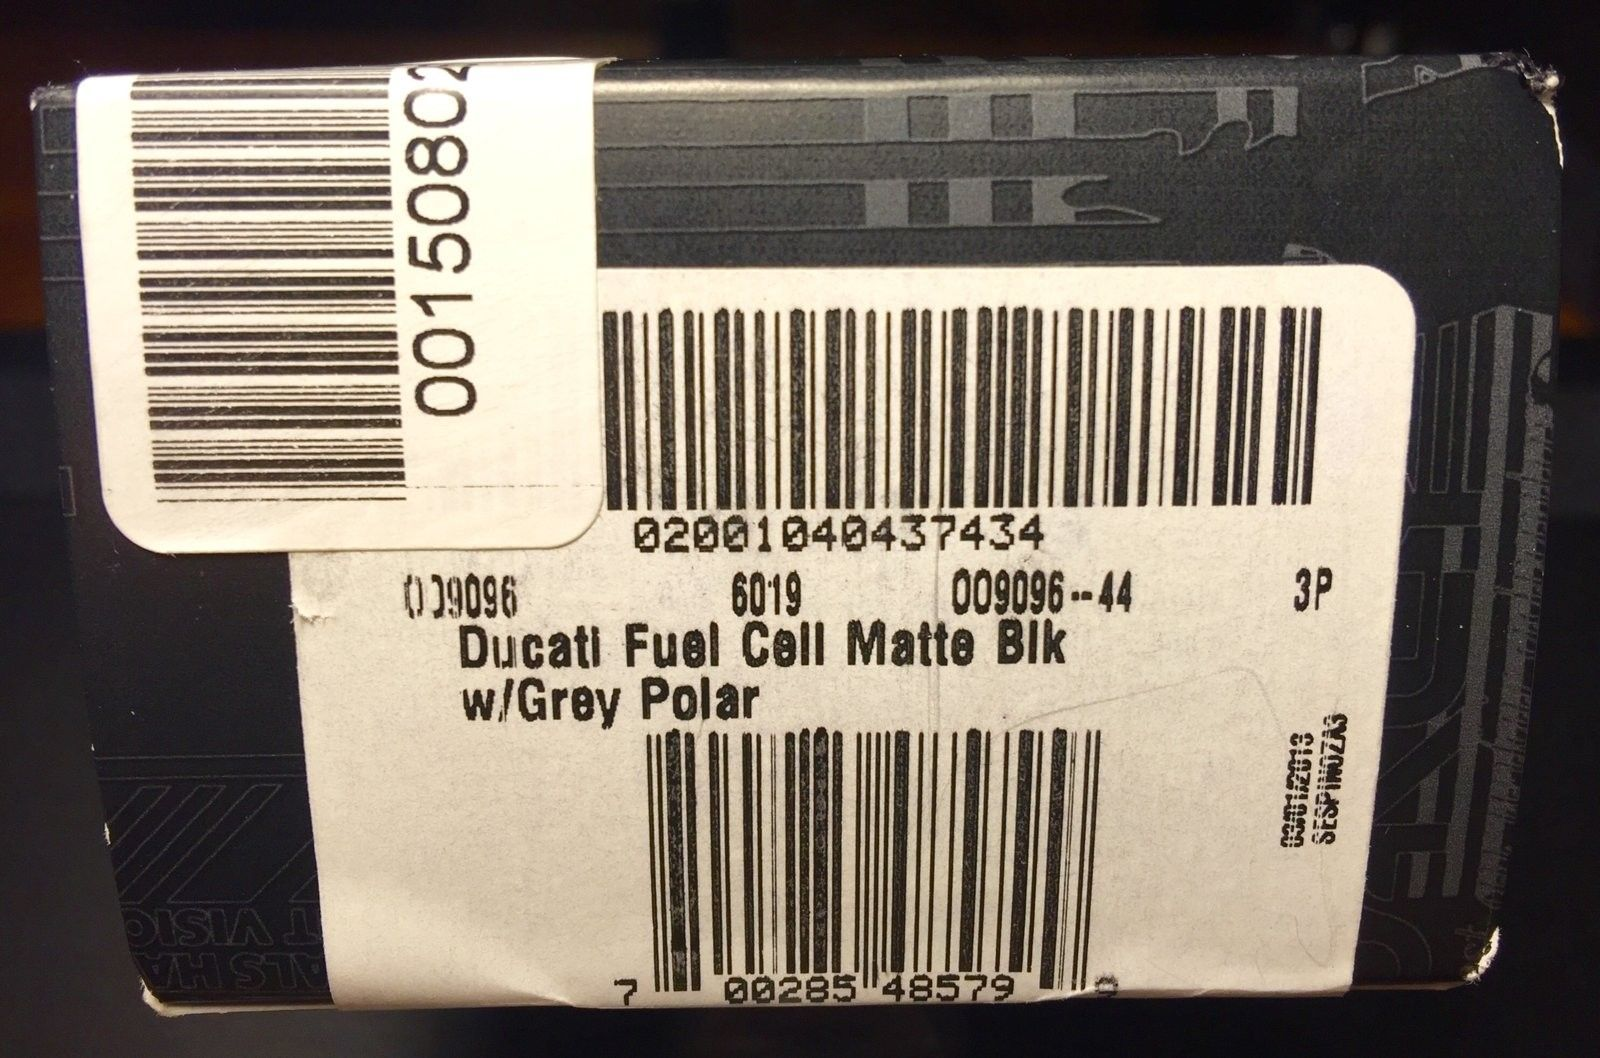 DUCATI FUEL CELL. VERY GOOD CONDITION - image.jpeg